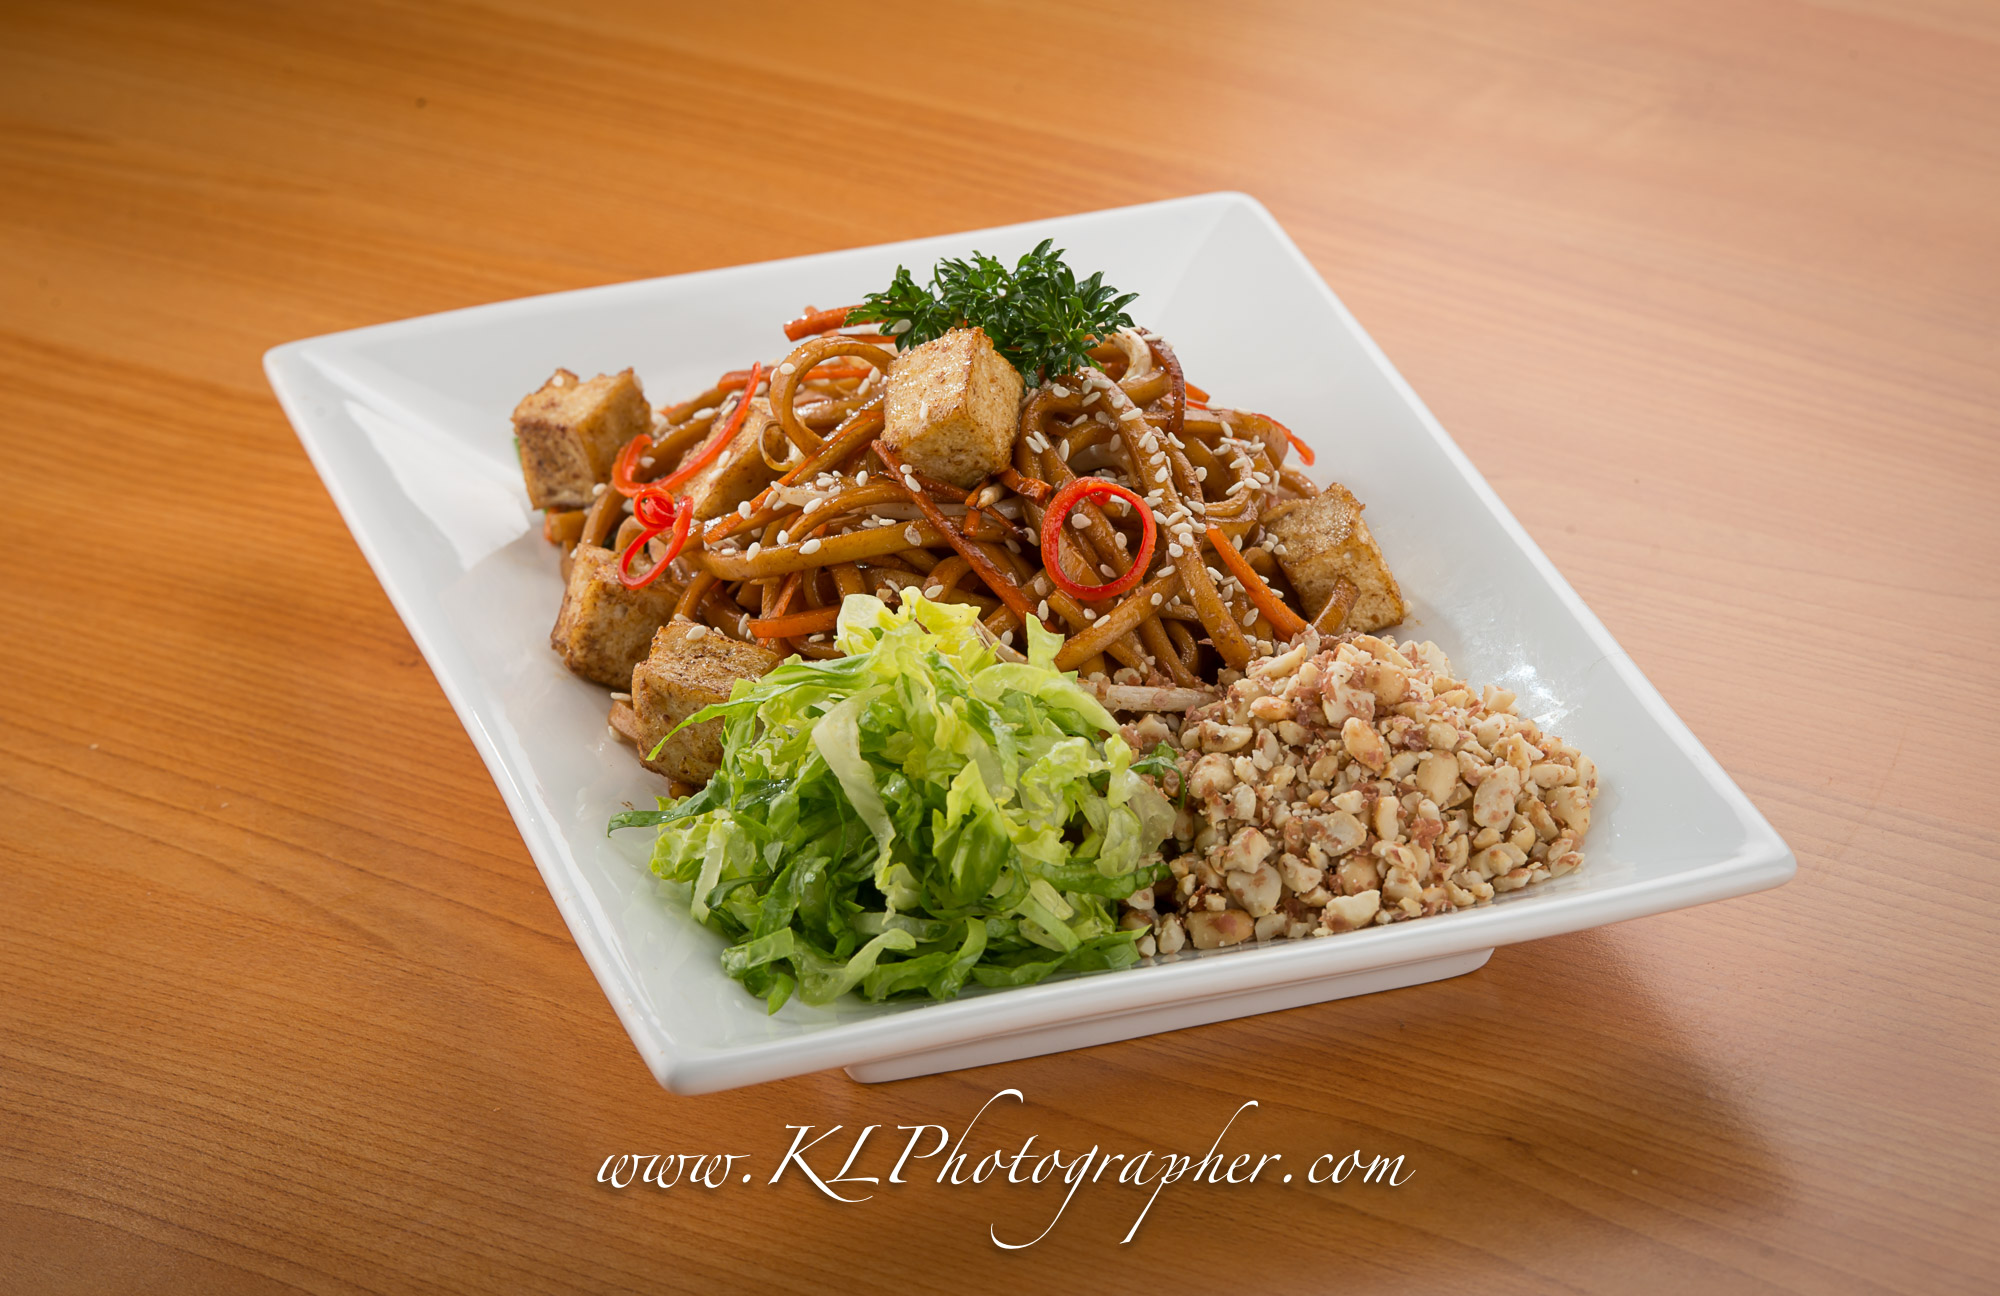 KL Photographer Food Photography